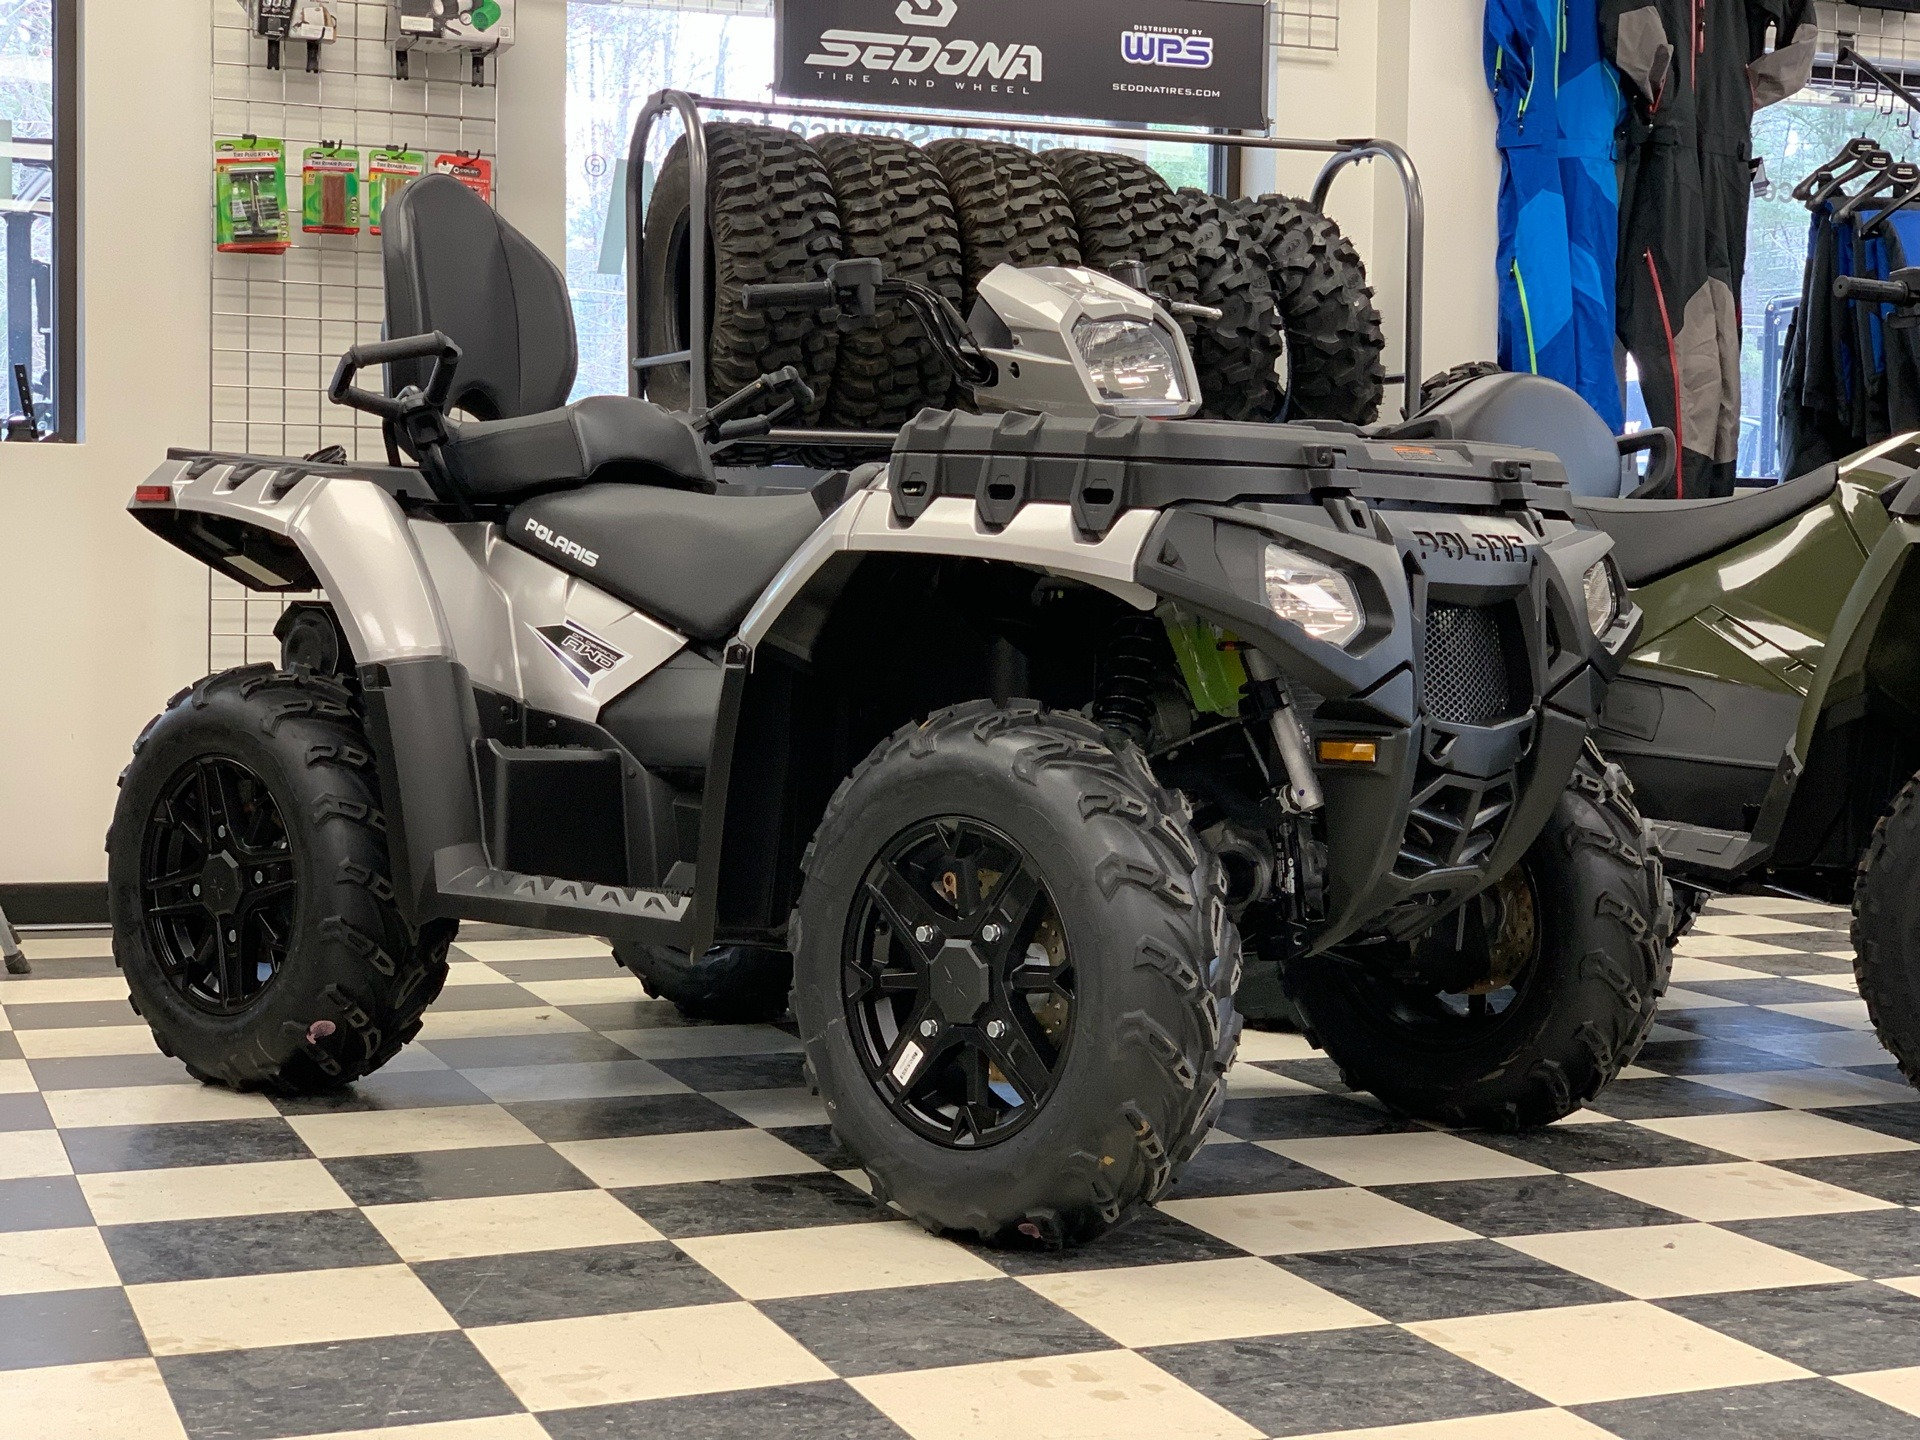 2019 Polaris Sportsman Touring 850 SP in Milford, New Hampshire - Photo 2